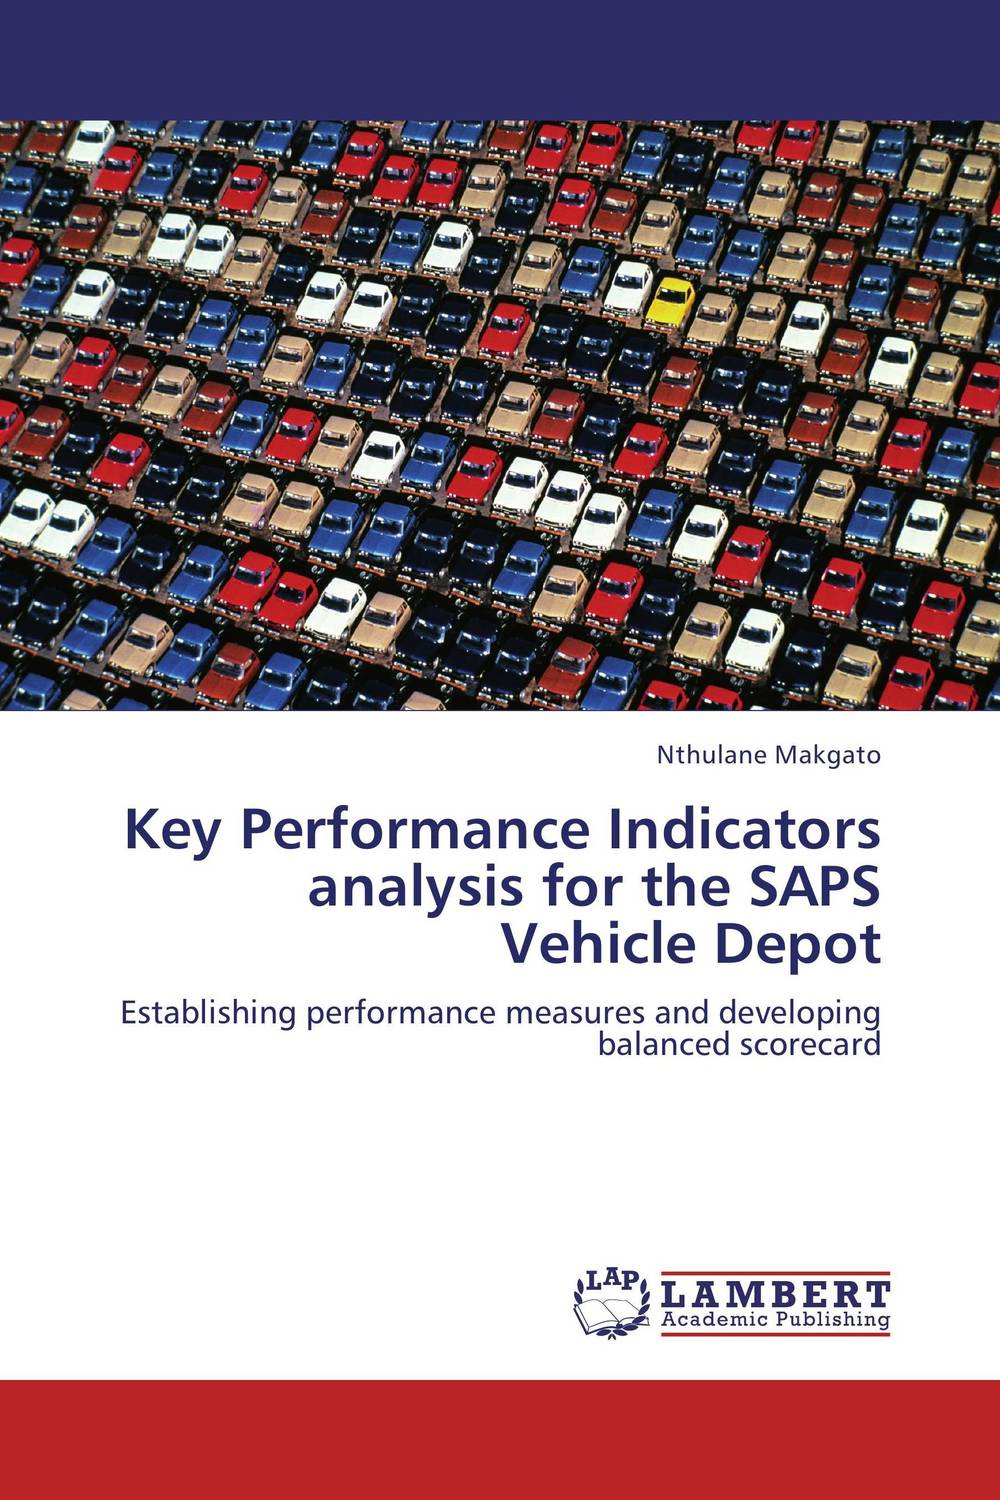 Key Performance Indicators analysis for the SAPS Vehicle Depot david parmenter key performance indicators